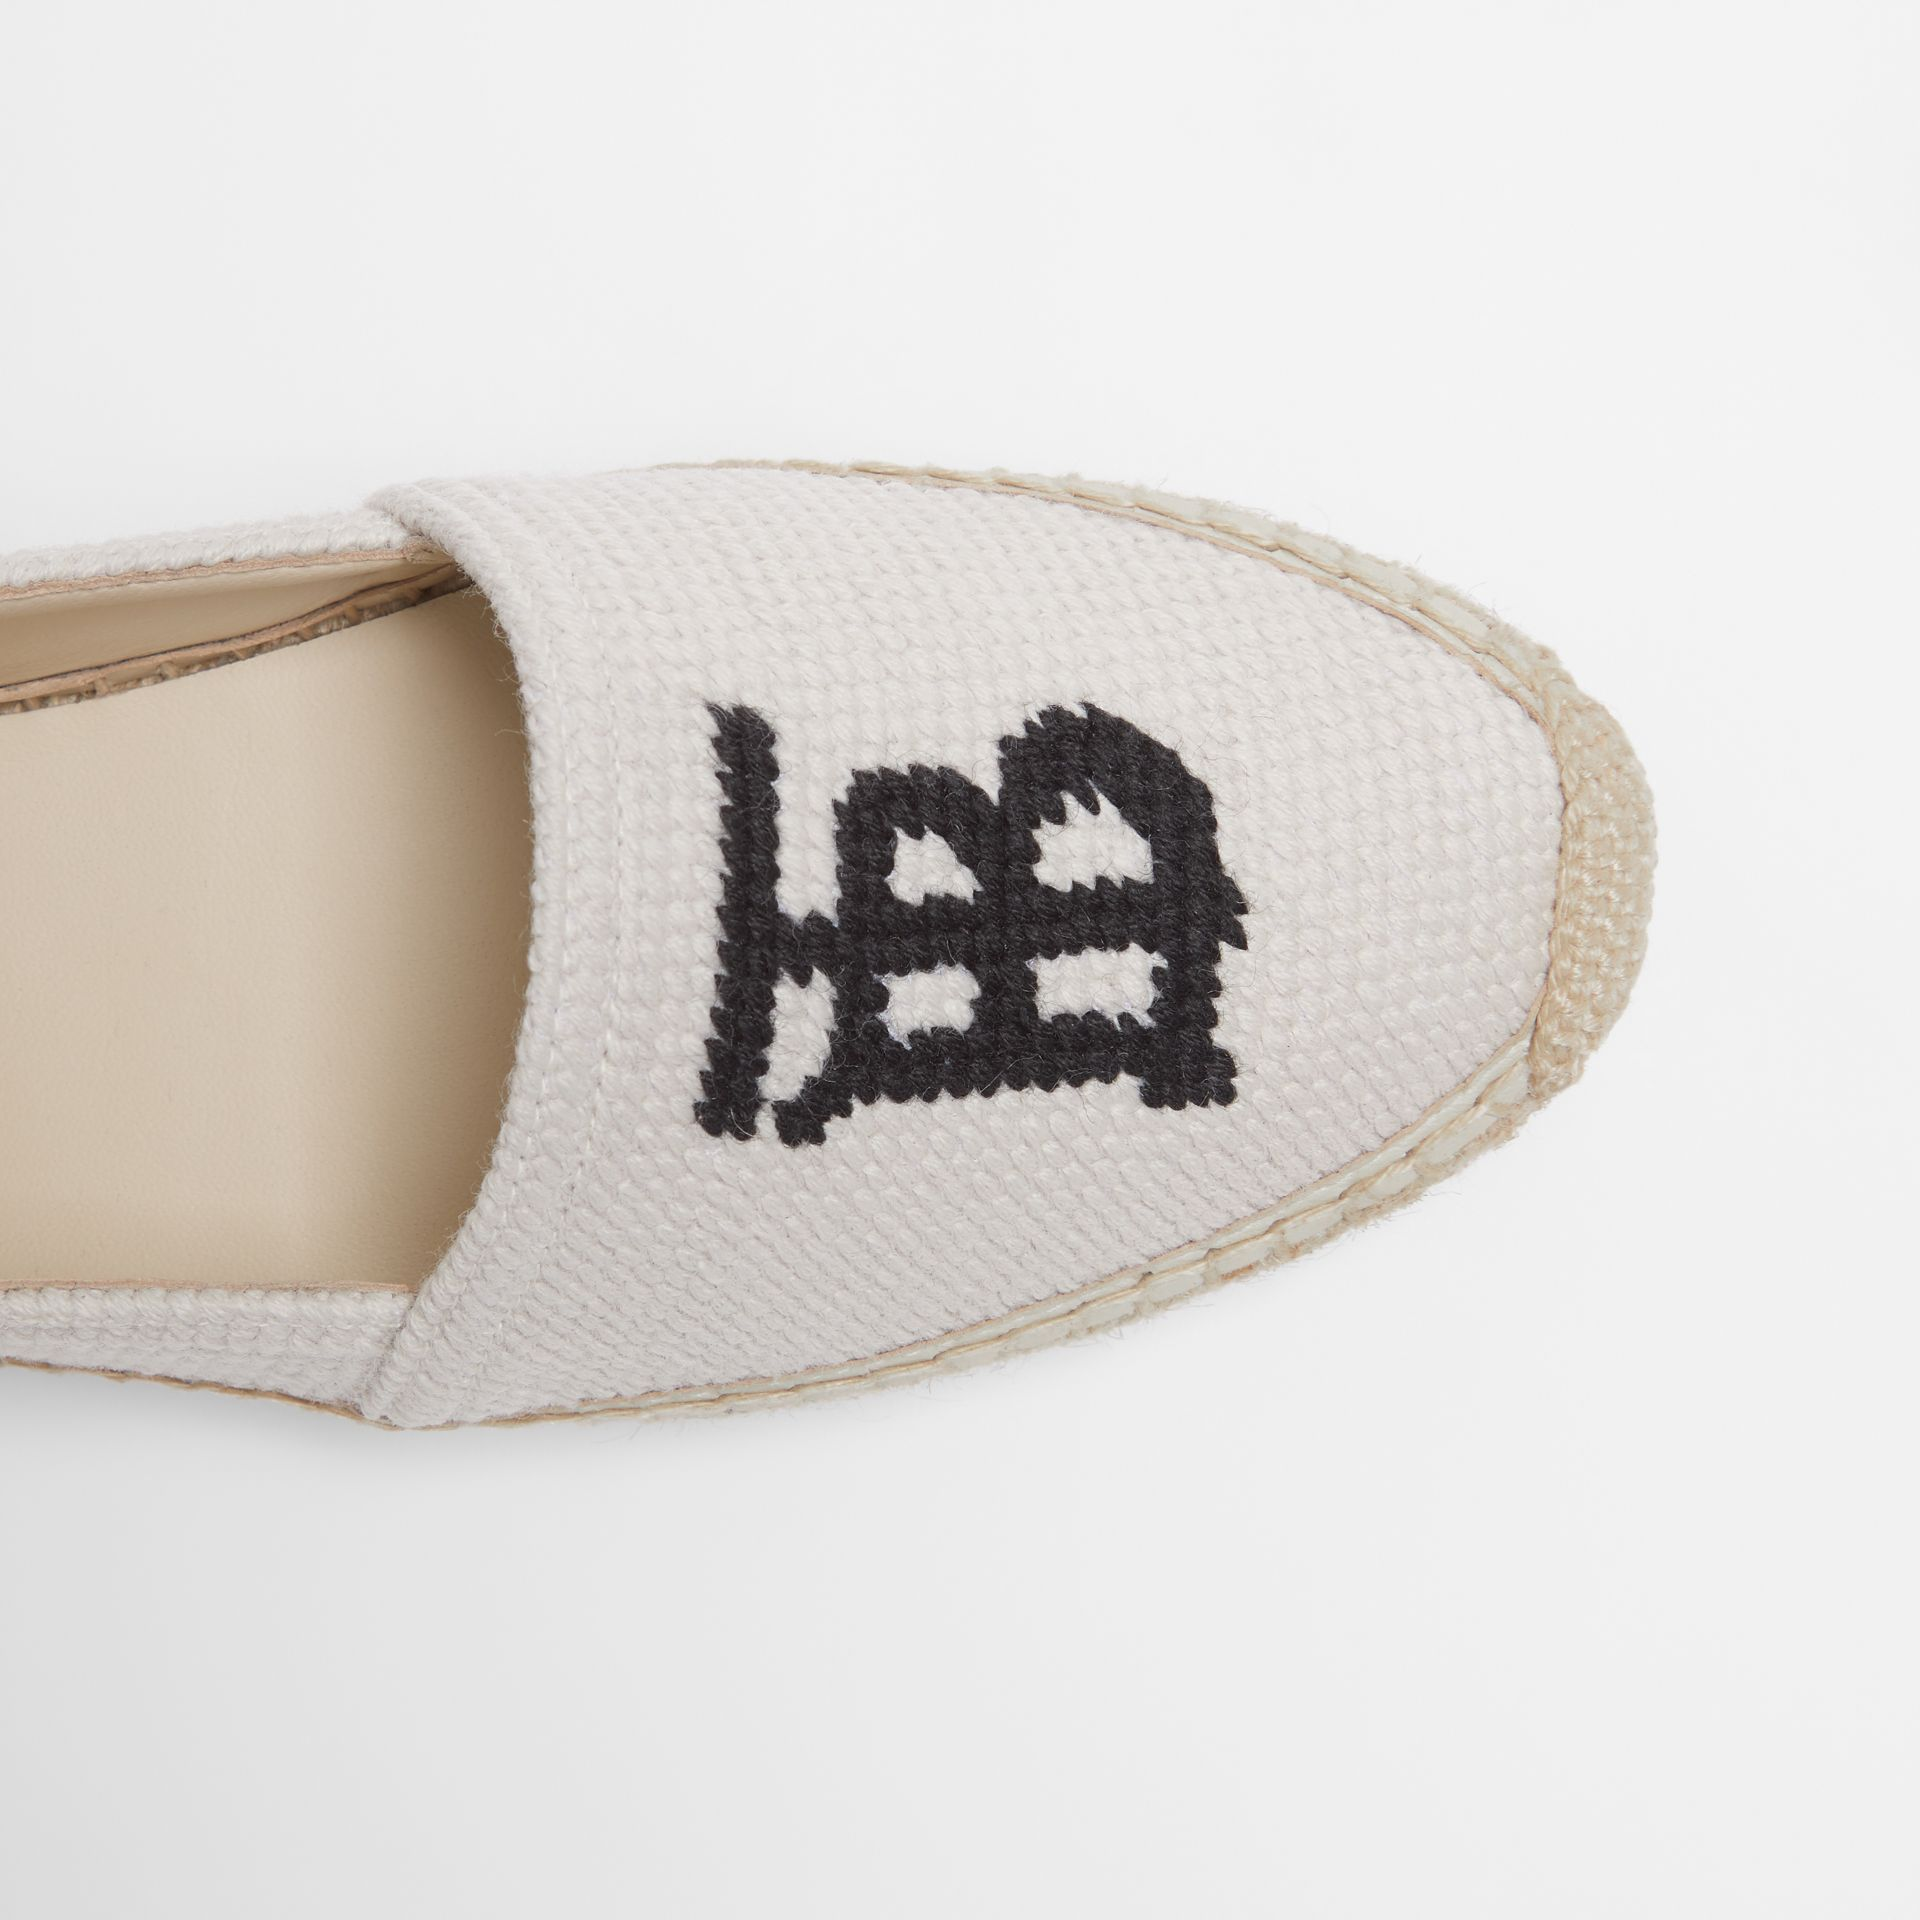 Monogram Motif Cotton and Leather Espadrilles in Ecru/black | Burberry - gallery image 1